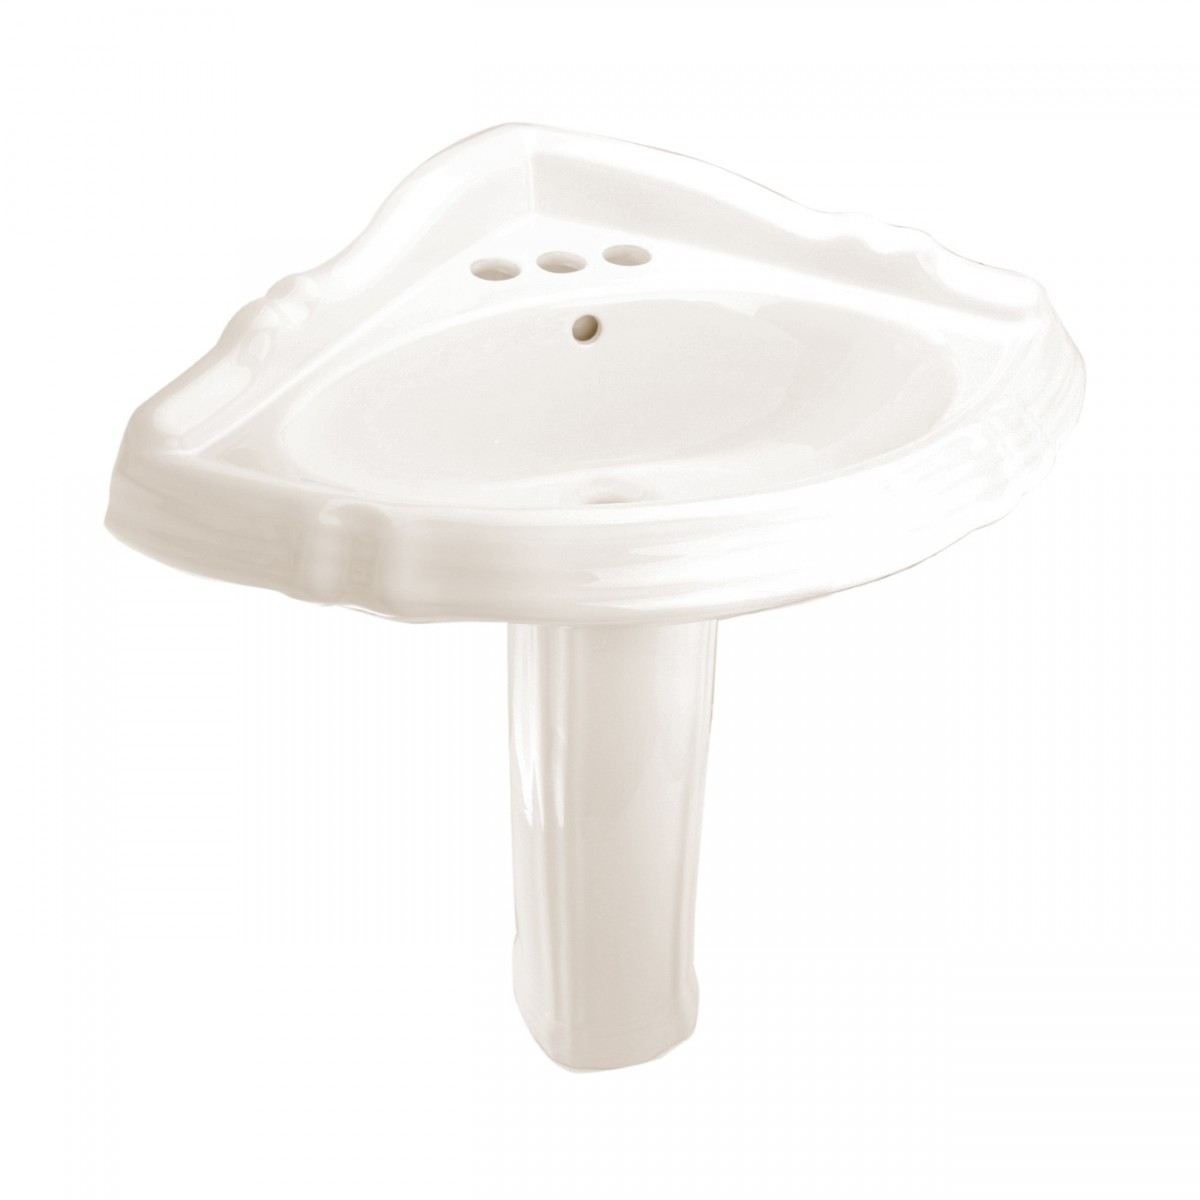 Corner Basin With Pedestal : Bathroom Corner Pedestal Sink Sheffield Bone Vitreous China